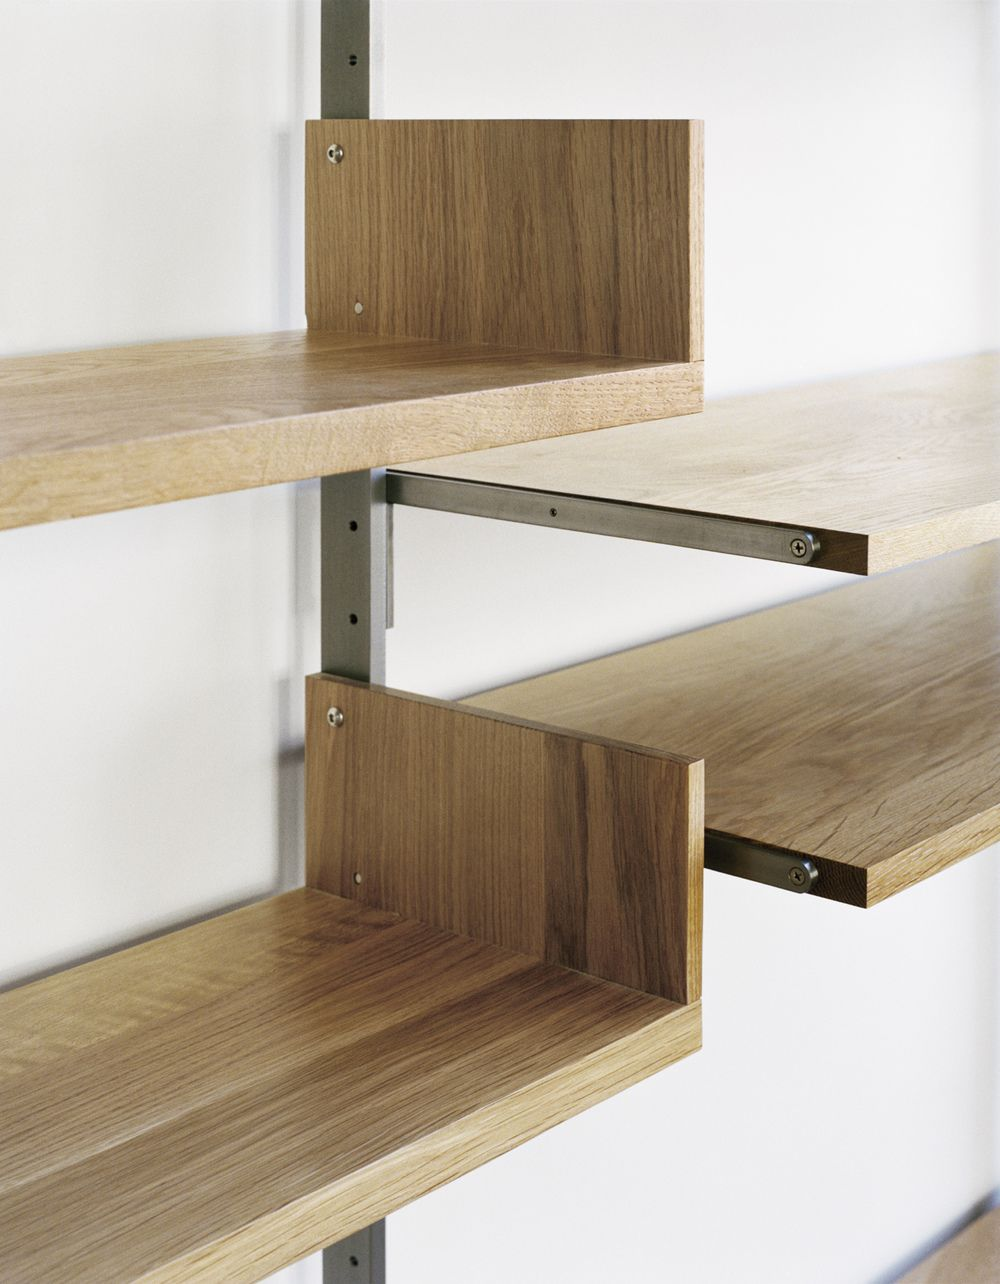 detail of as4 desk configuration in solid white oak & cold-rolled steel   photograph by: Meredith Heuer